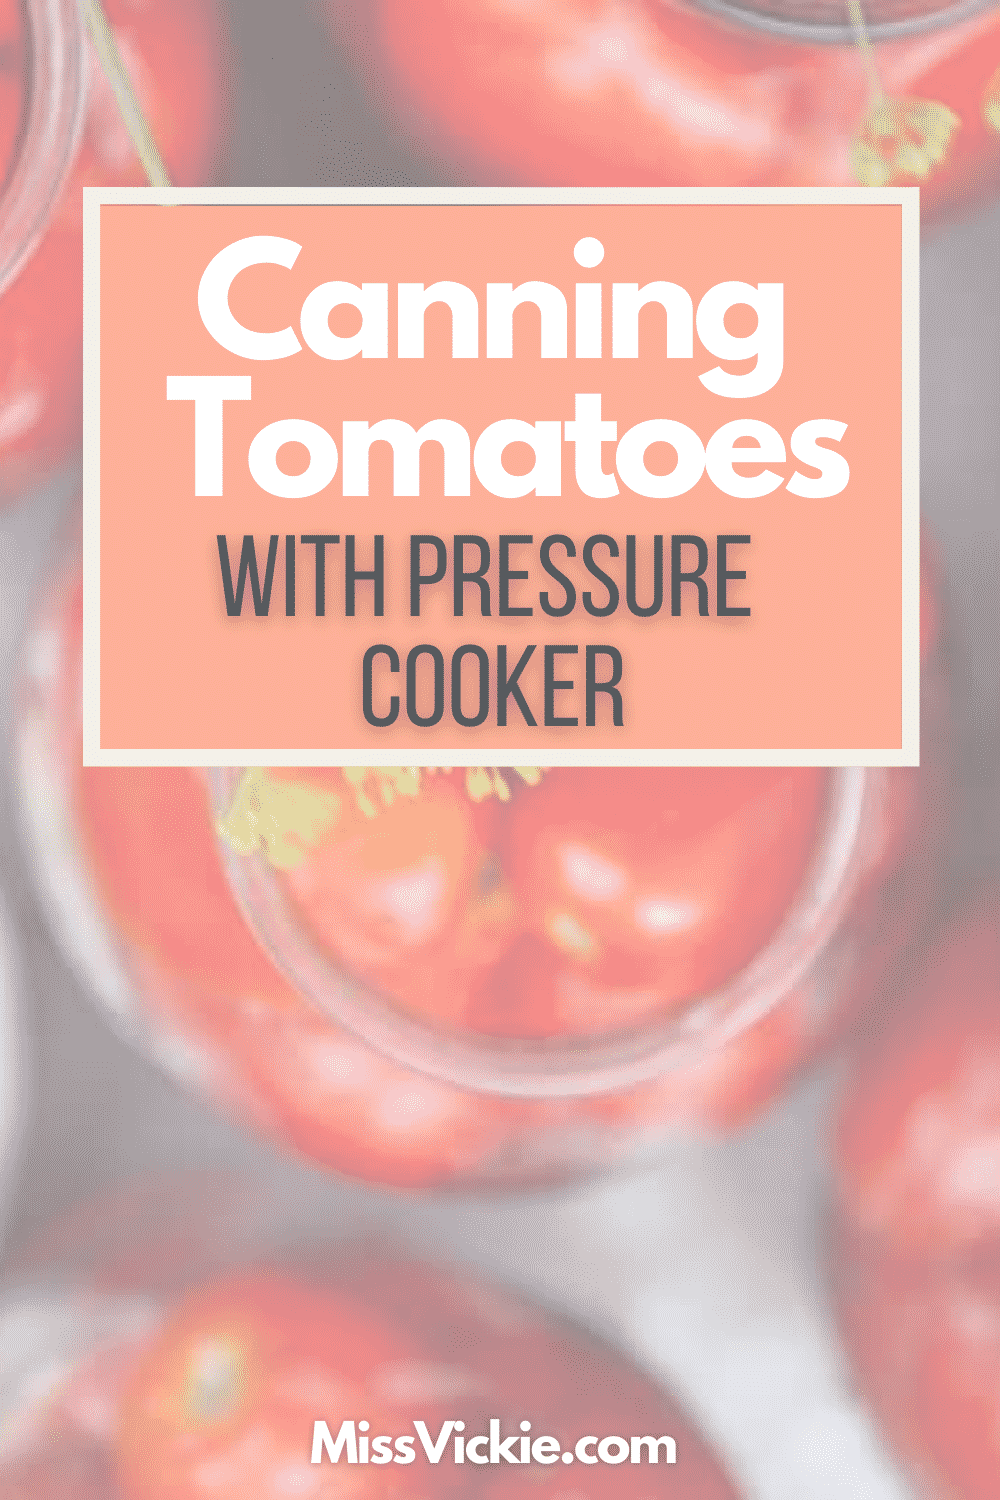 Canning Tomatoes With Pressure Cooker